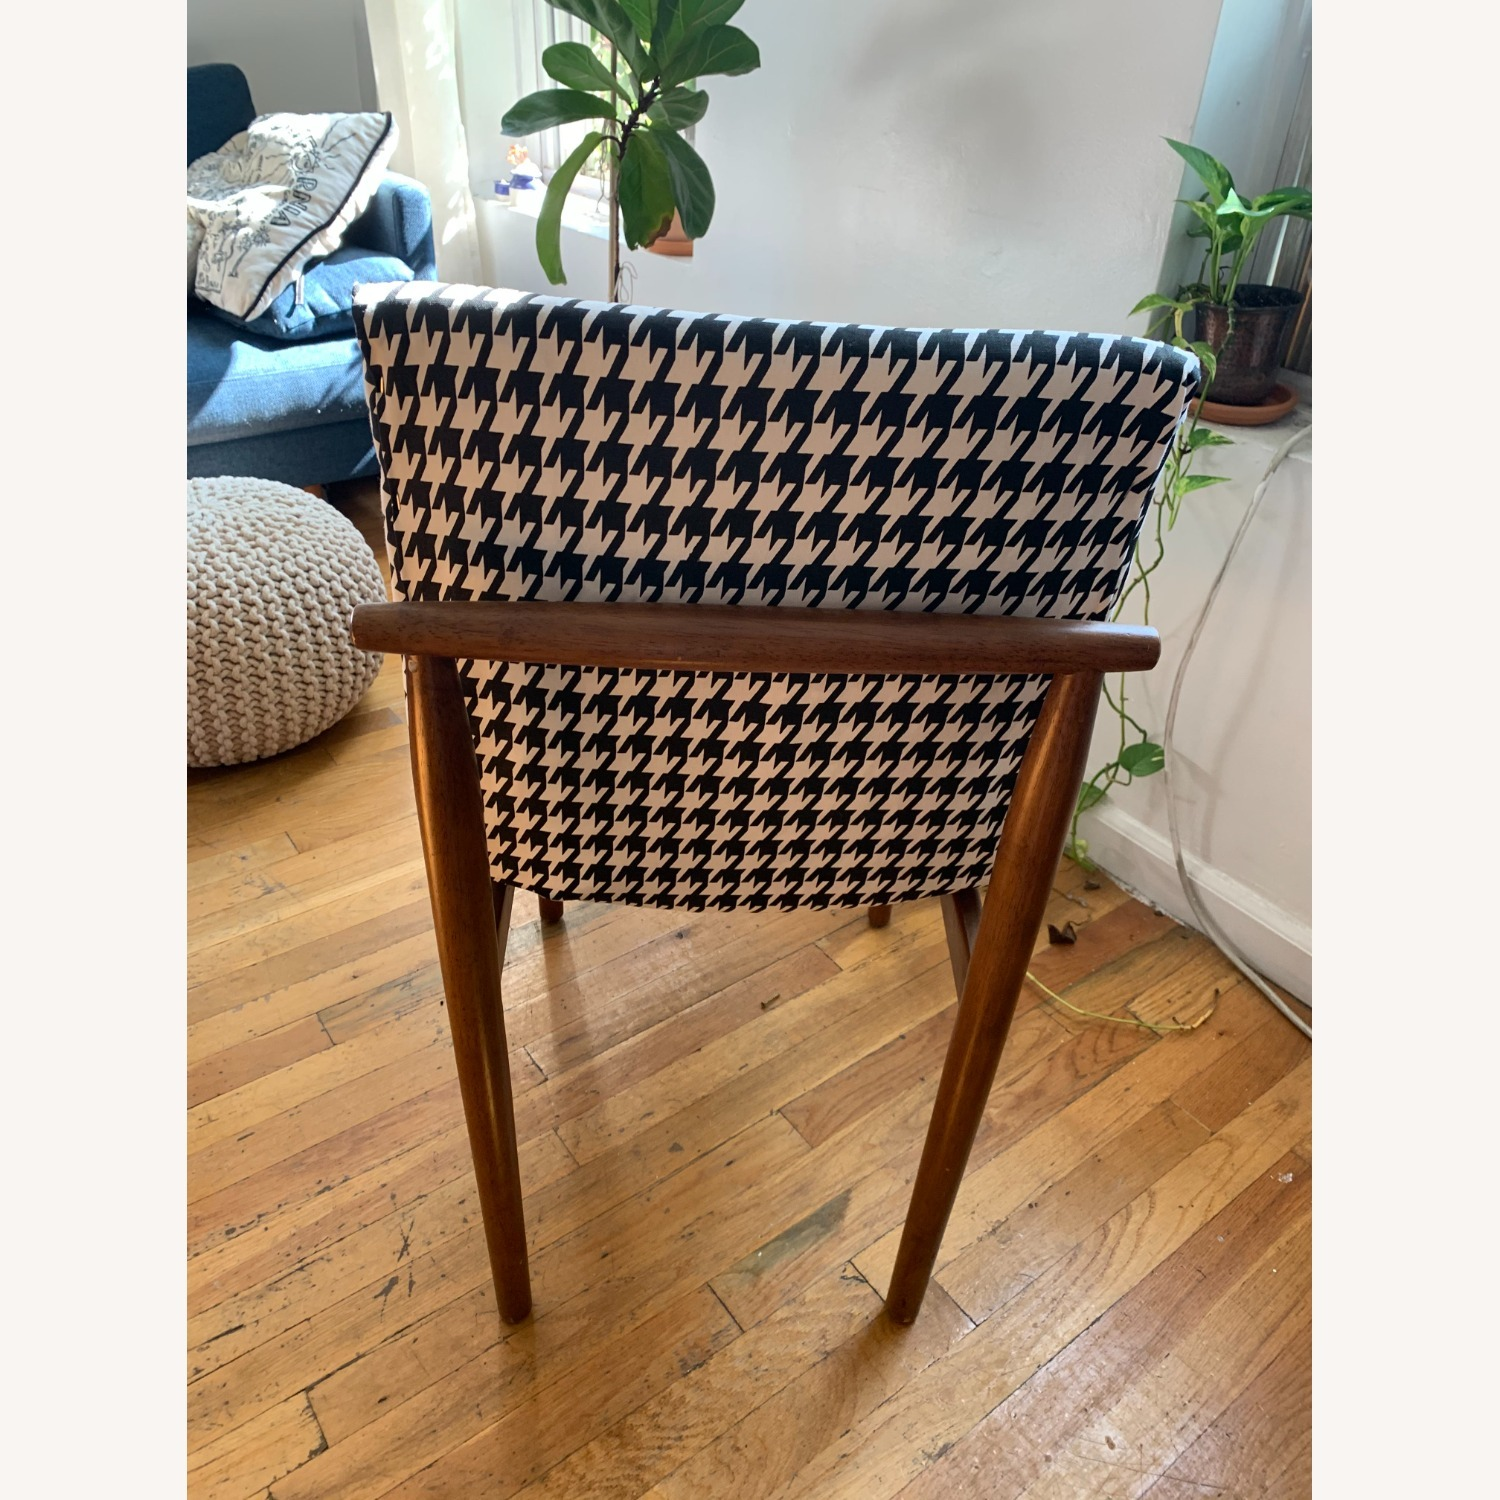 West Elm Houndstooth Customized Accent Chair - image-4